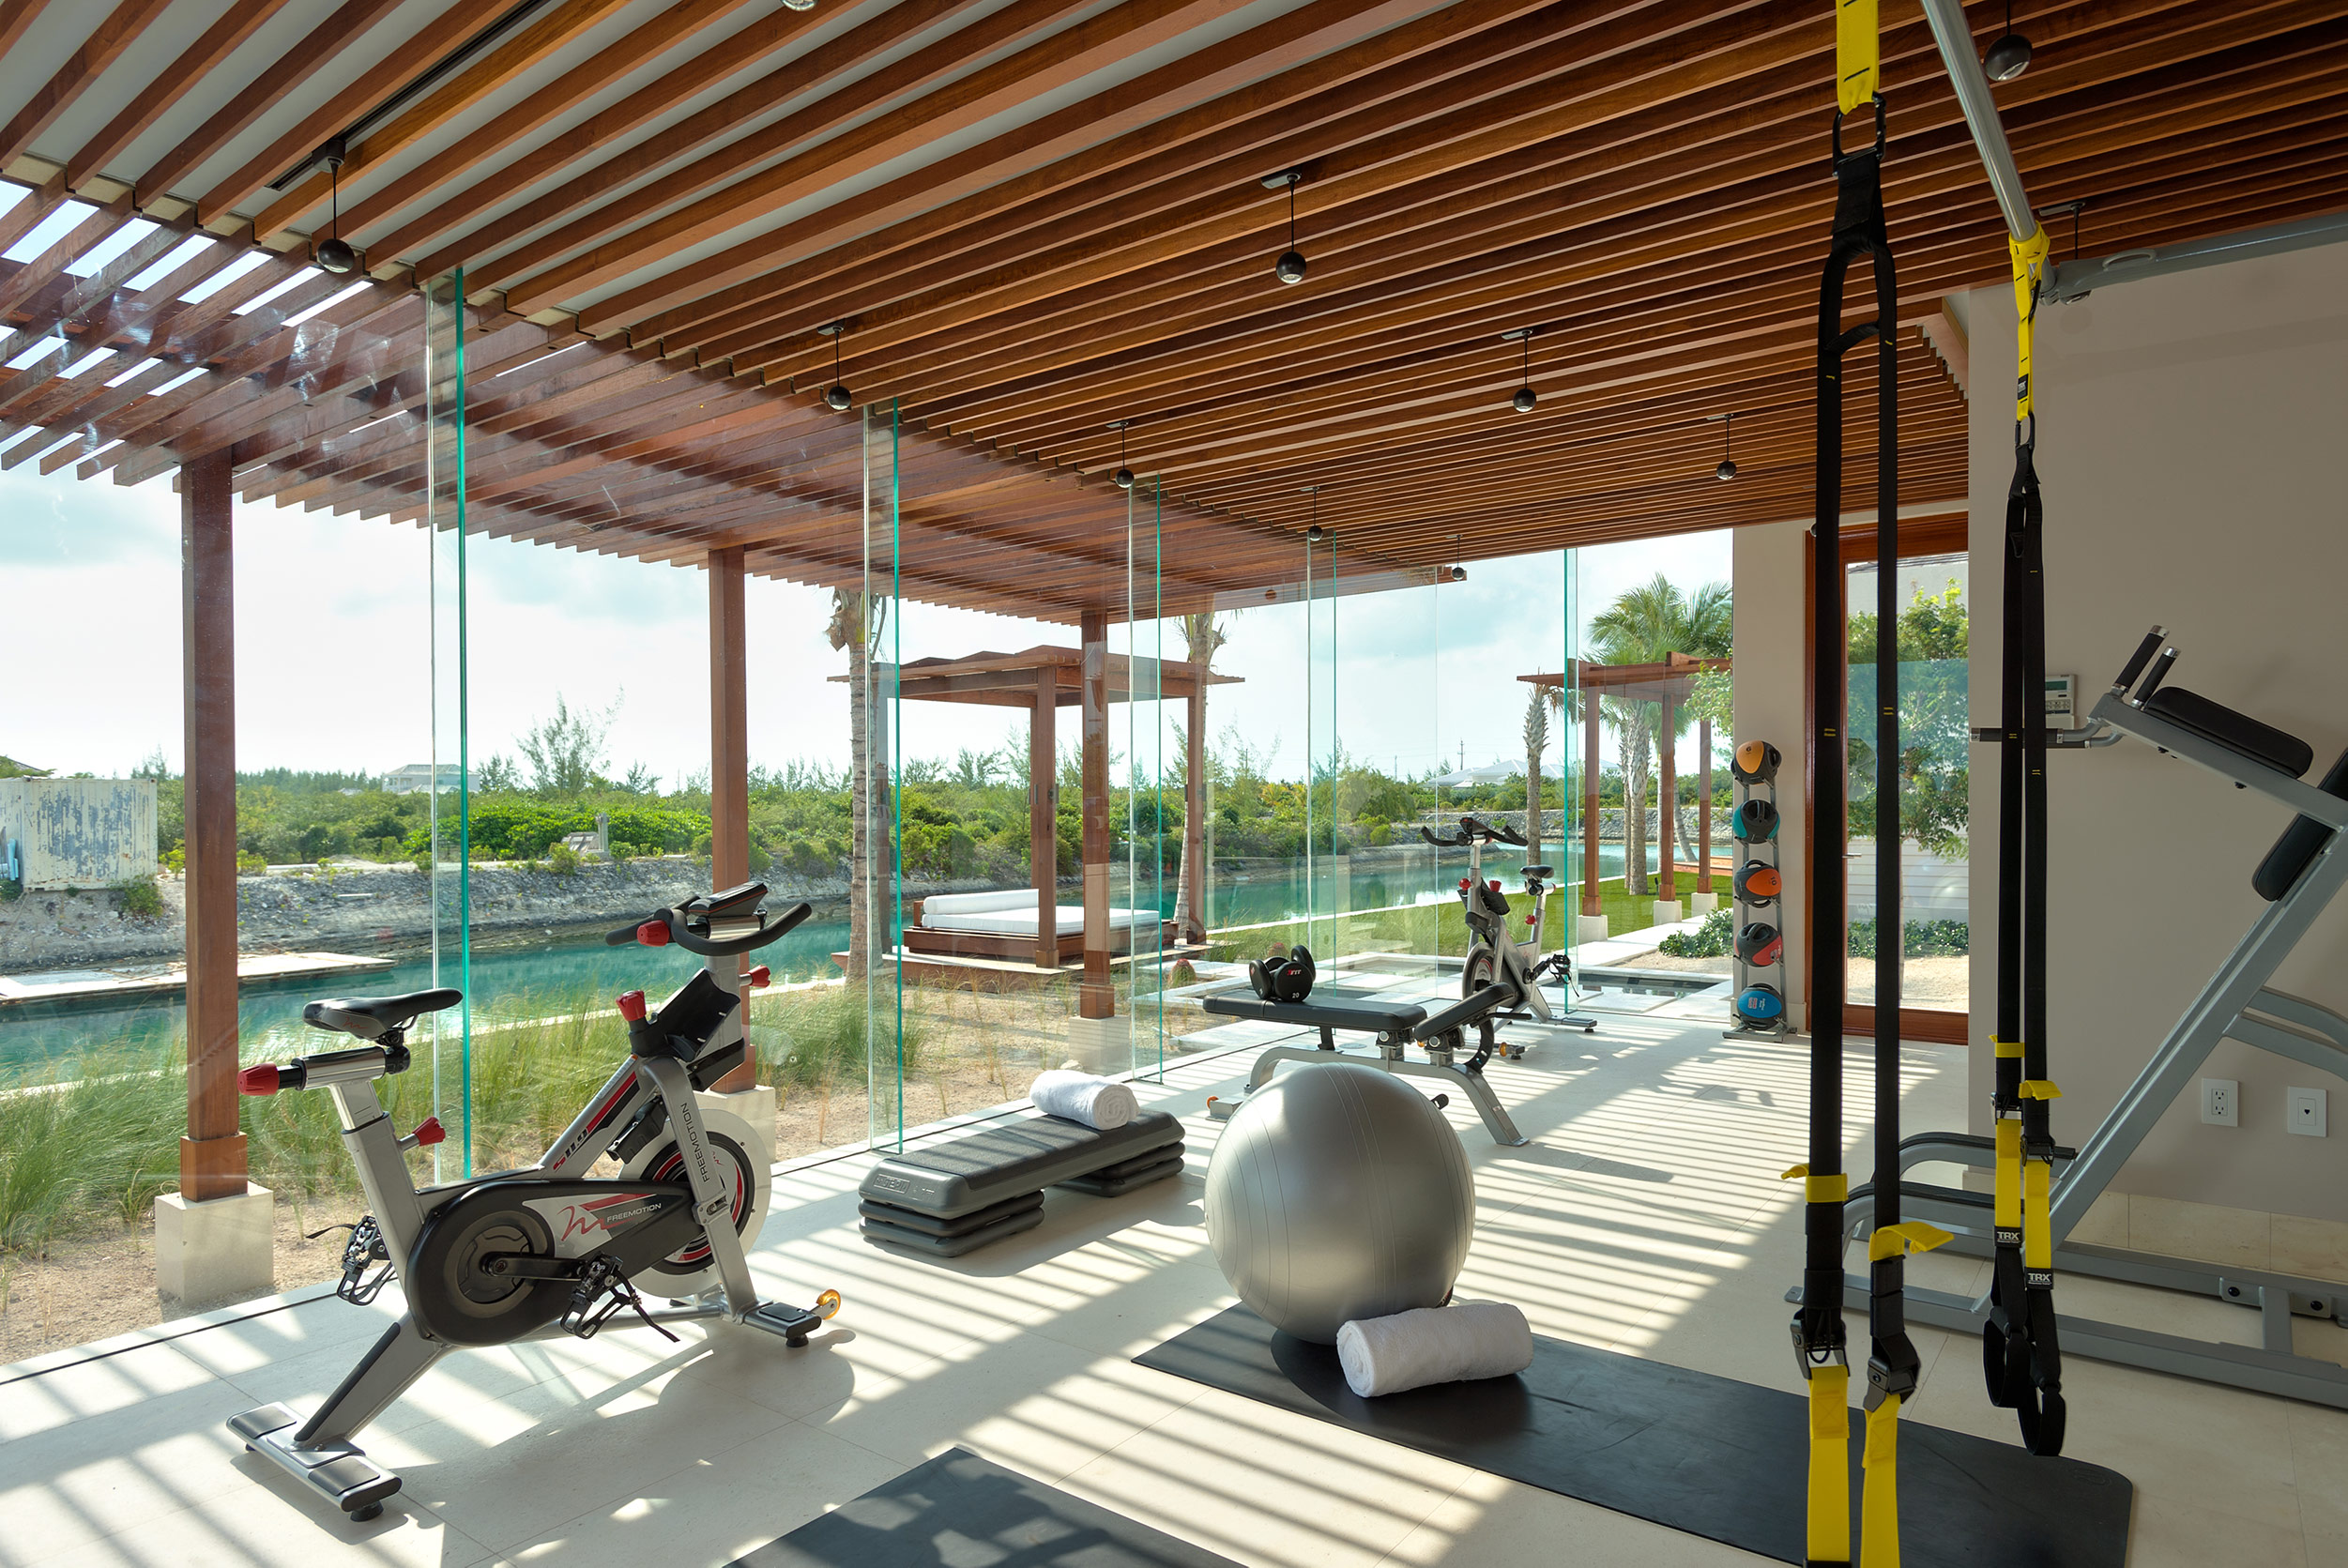 Vision and Balance - view of the gym